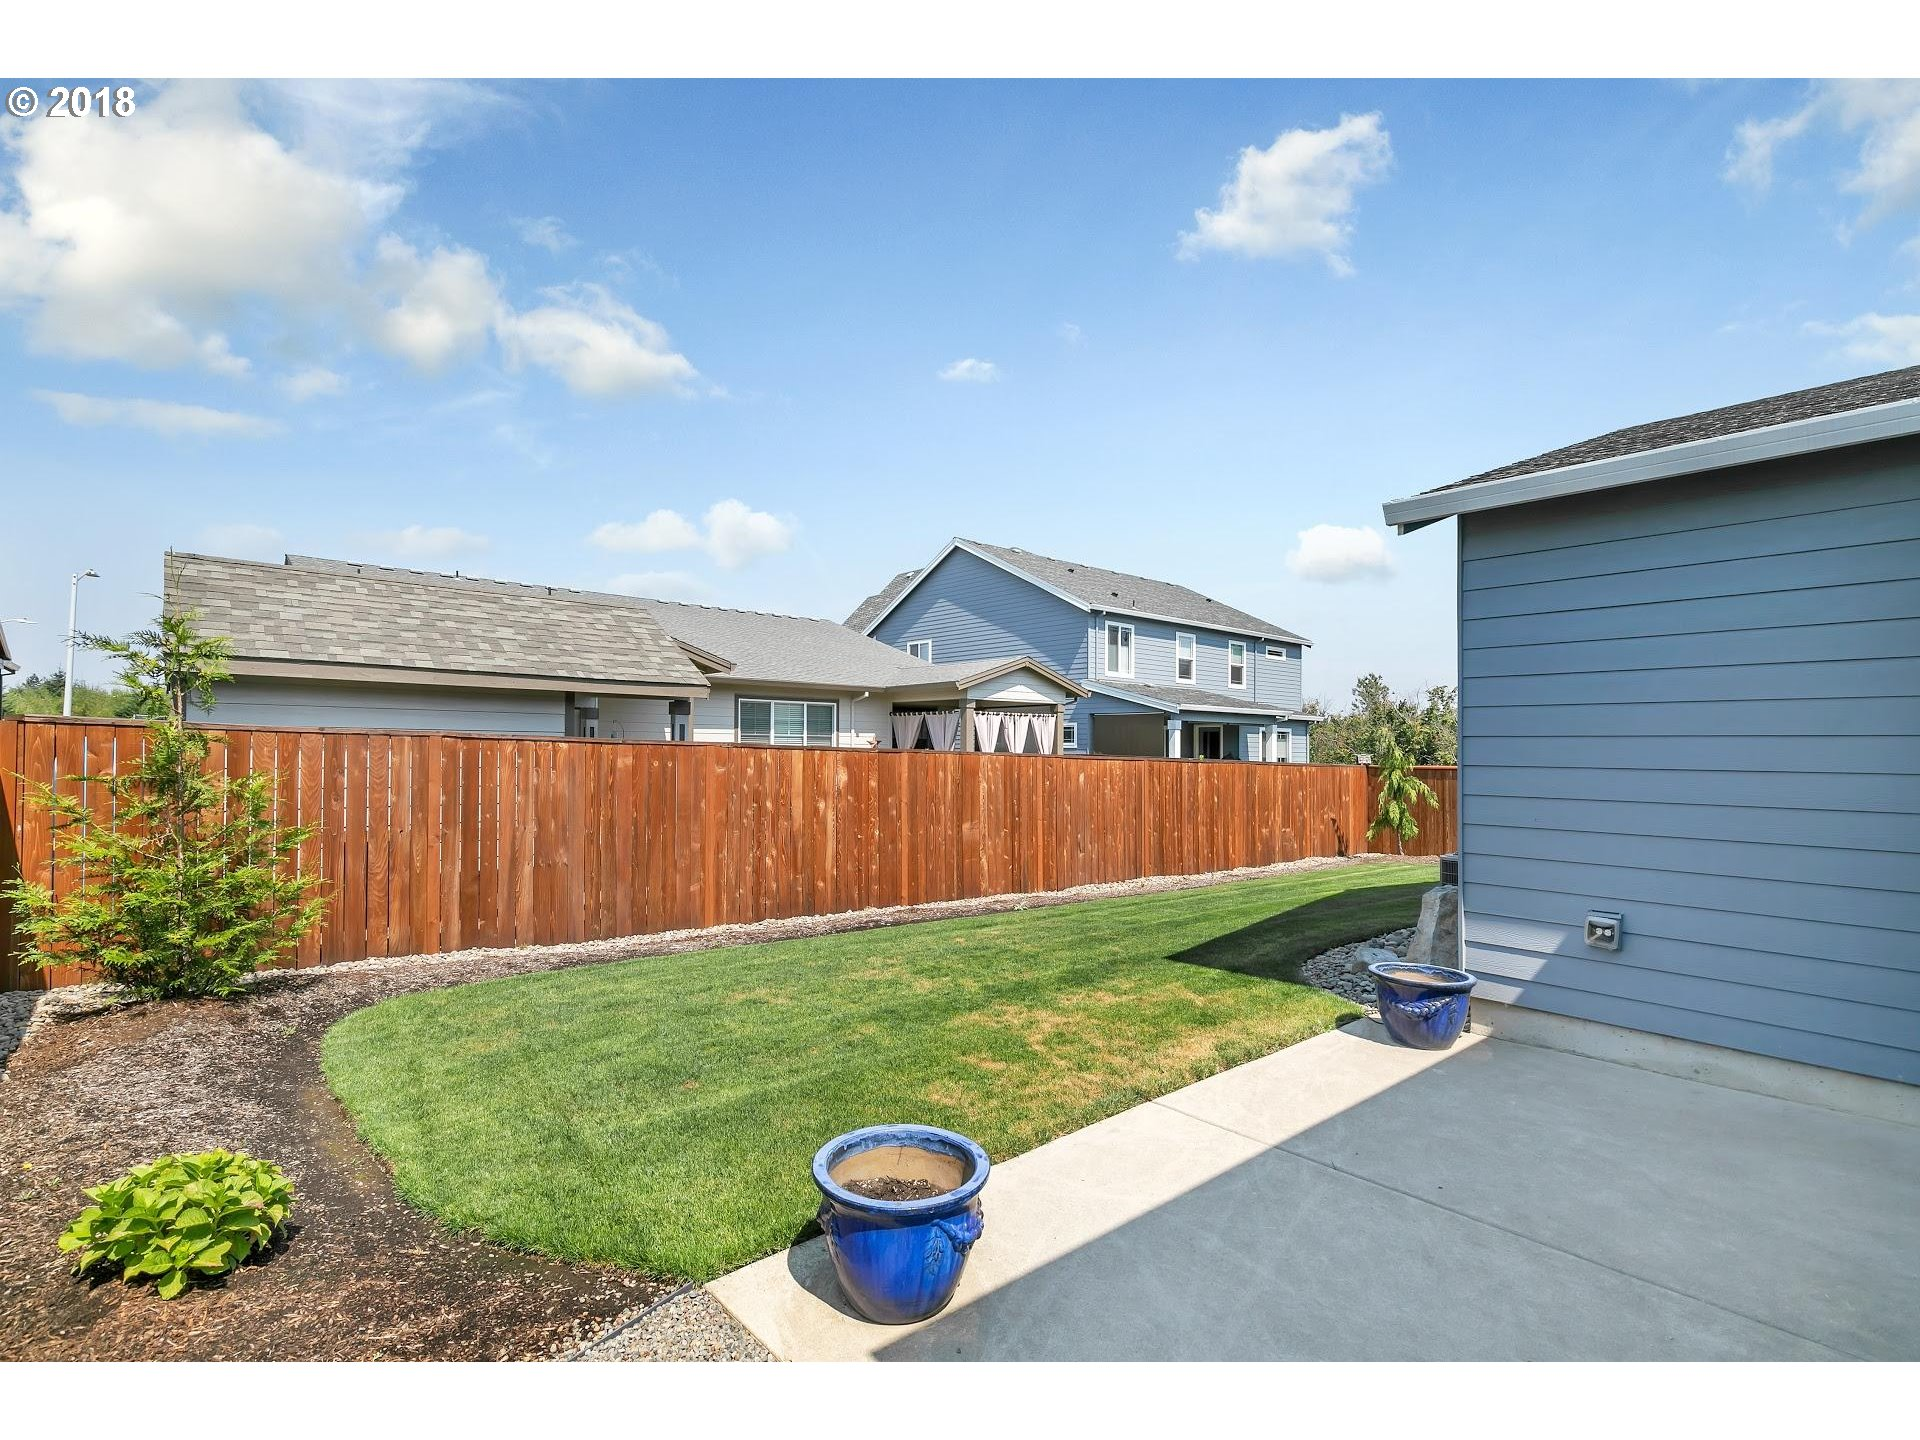 19683 ORCHARD GROVE DR Oregon City, OR 97045 - MLS #: 18620123